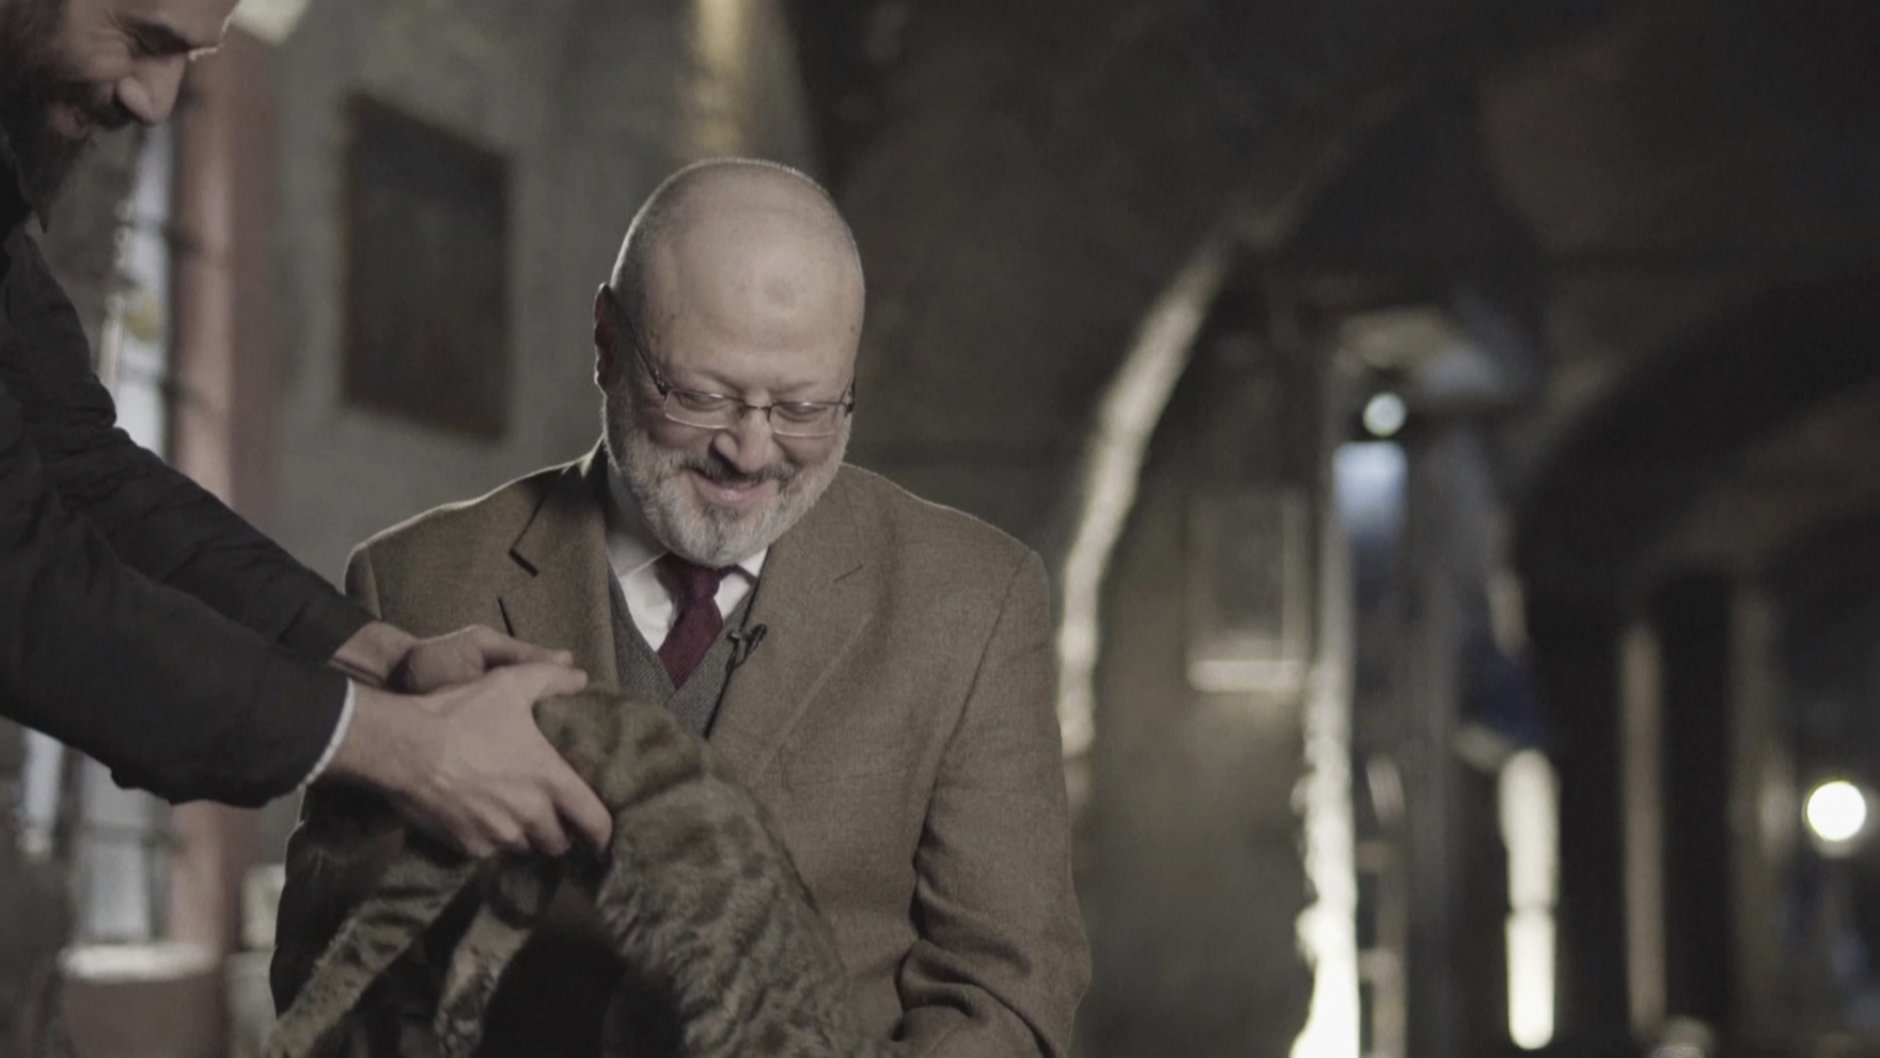 """In this image made from a March 2018 video provided by Metafora Production, Eiad Alhaji, a Syrian documentary film maker, grabs a cat that jumped onto Jamal Khashoggi's lap as he speaks in an interview at an undisclosed location. Eighteen days after Khashoggi disappeared, Saudi Arabia acknowledged early Saturday, Oct. 20, 2018, that the 59-year-old writer has died in what it said was a """"fistfight"""" inside the Saudi consulate in Istanbul. (Metafora Production via AP)"""